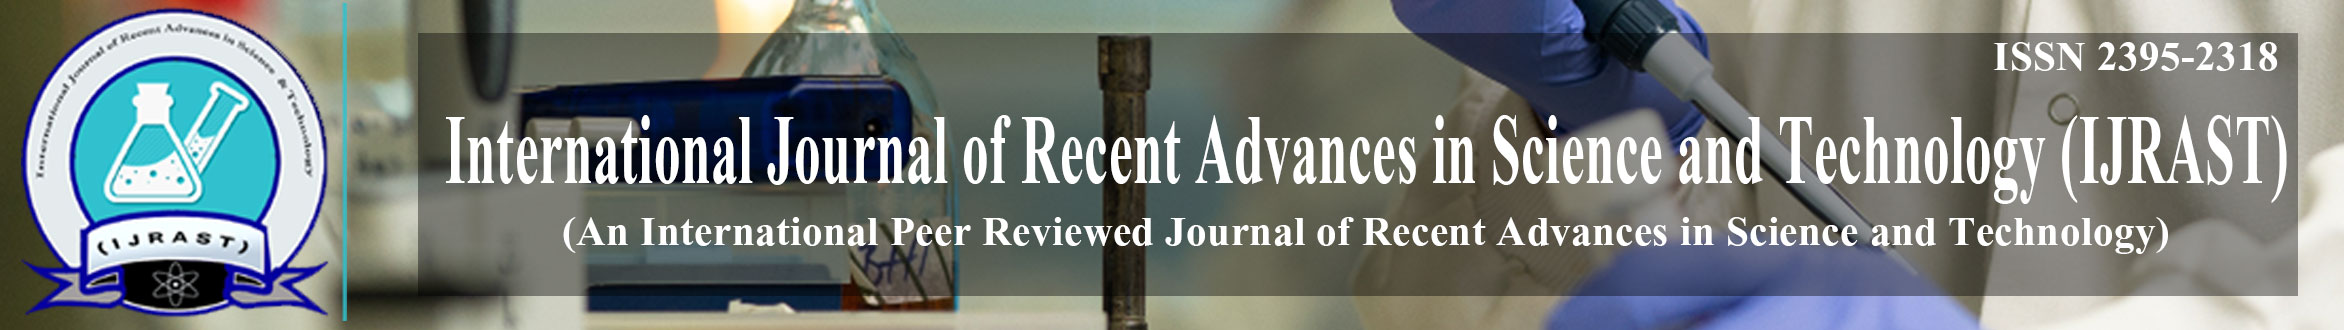 International Journal of Recent Advances in Science and Technology